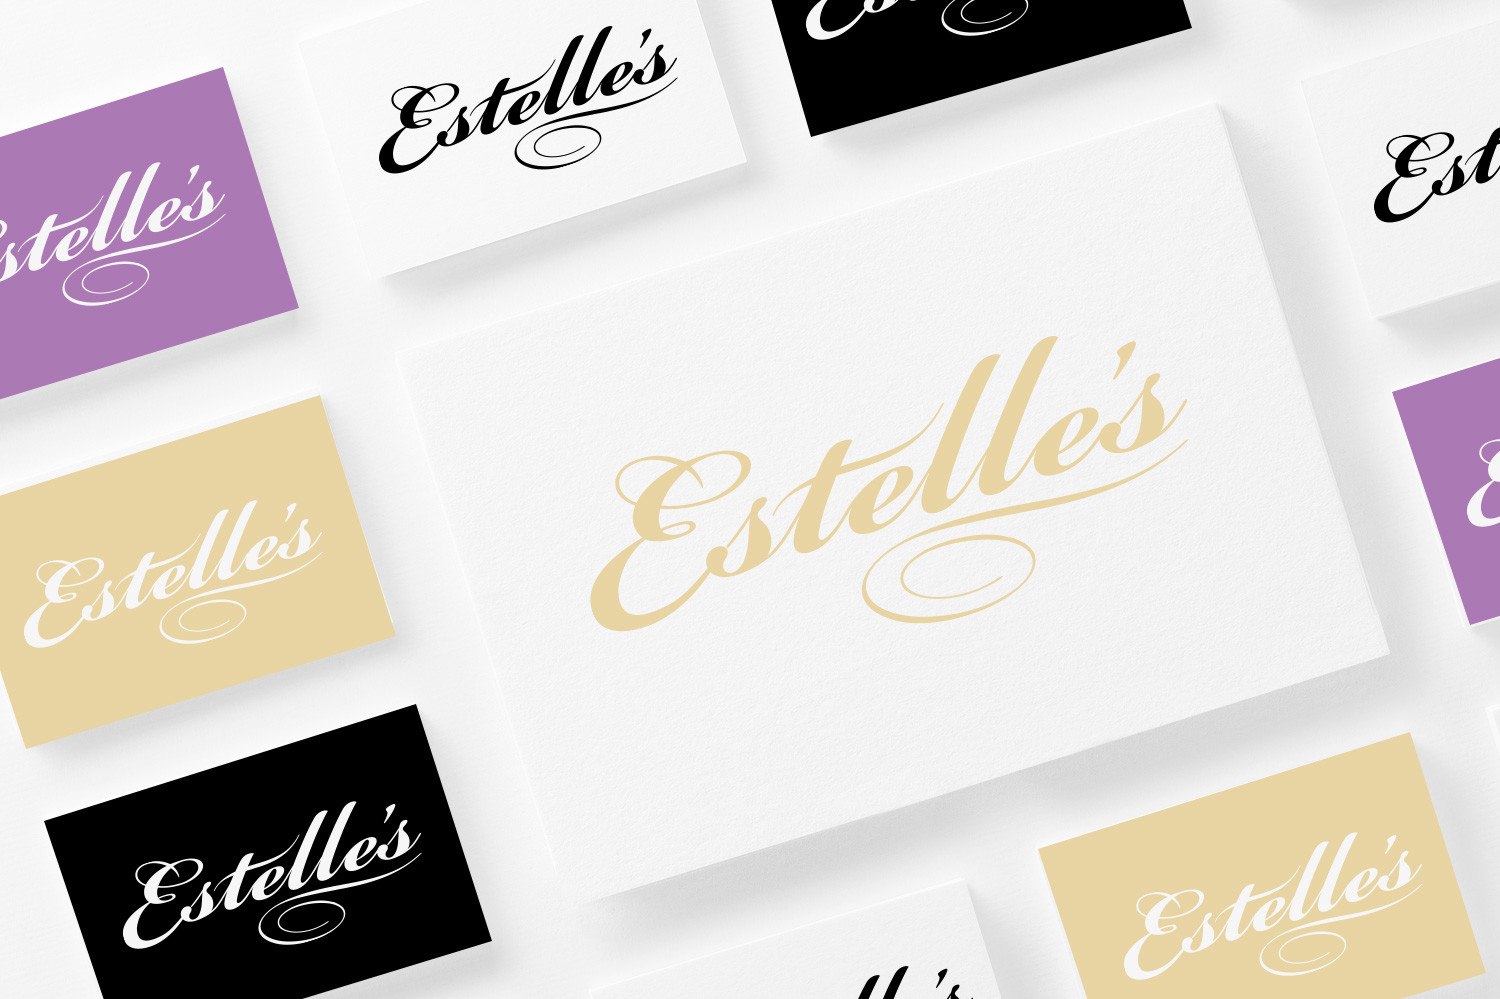 Estelles_CorporateIdentity